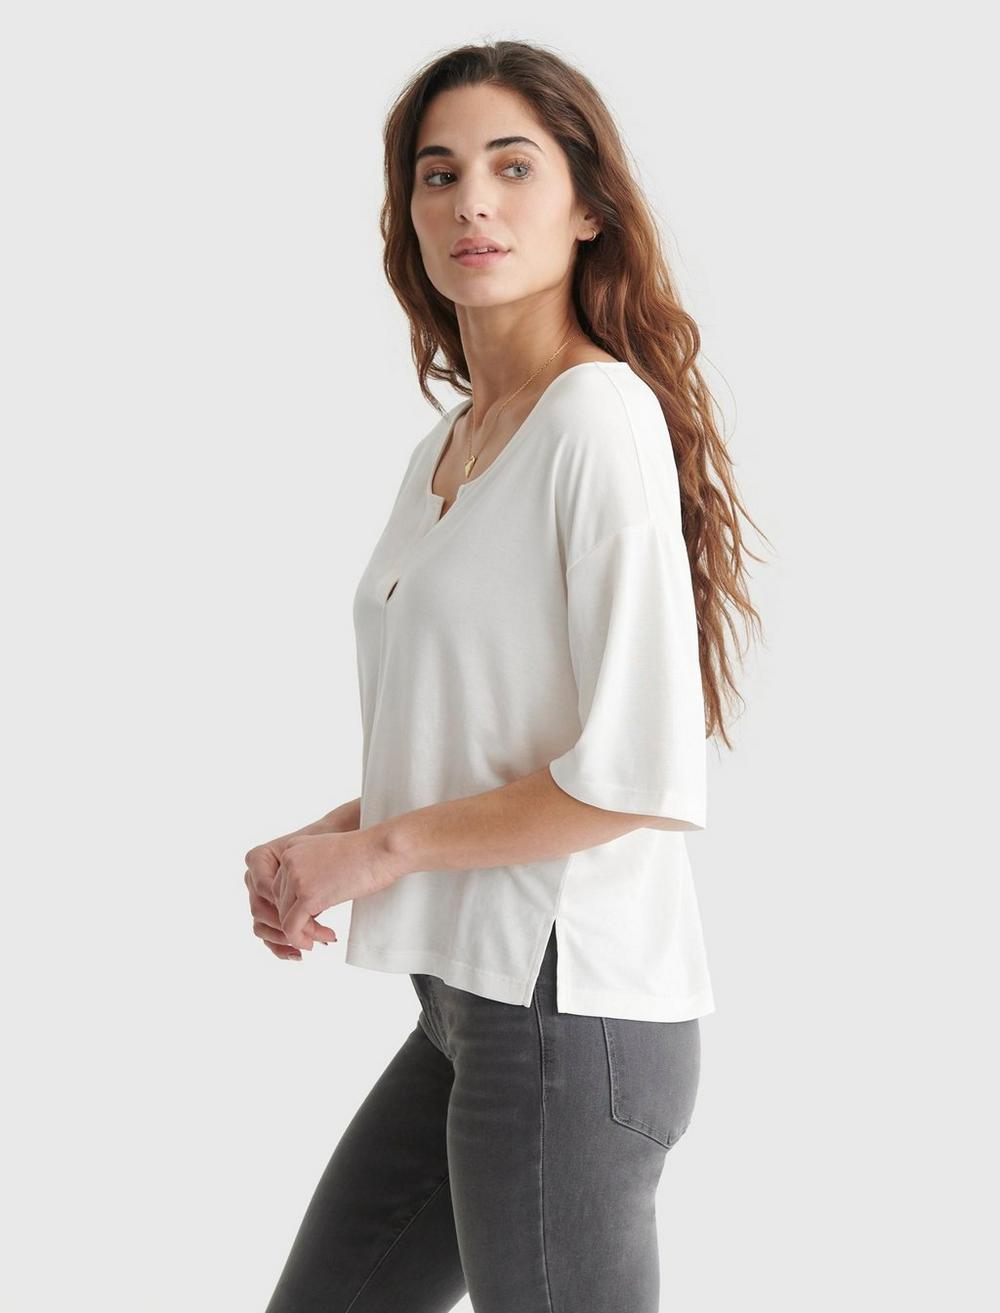 RELAXED-FIT V-NECK KNIT TOP, image 3